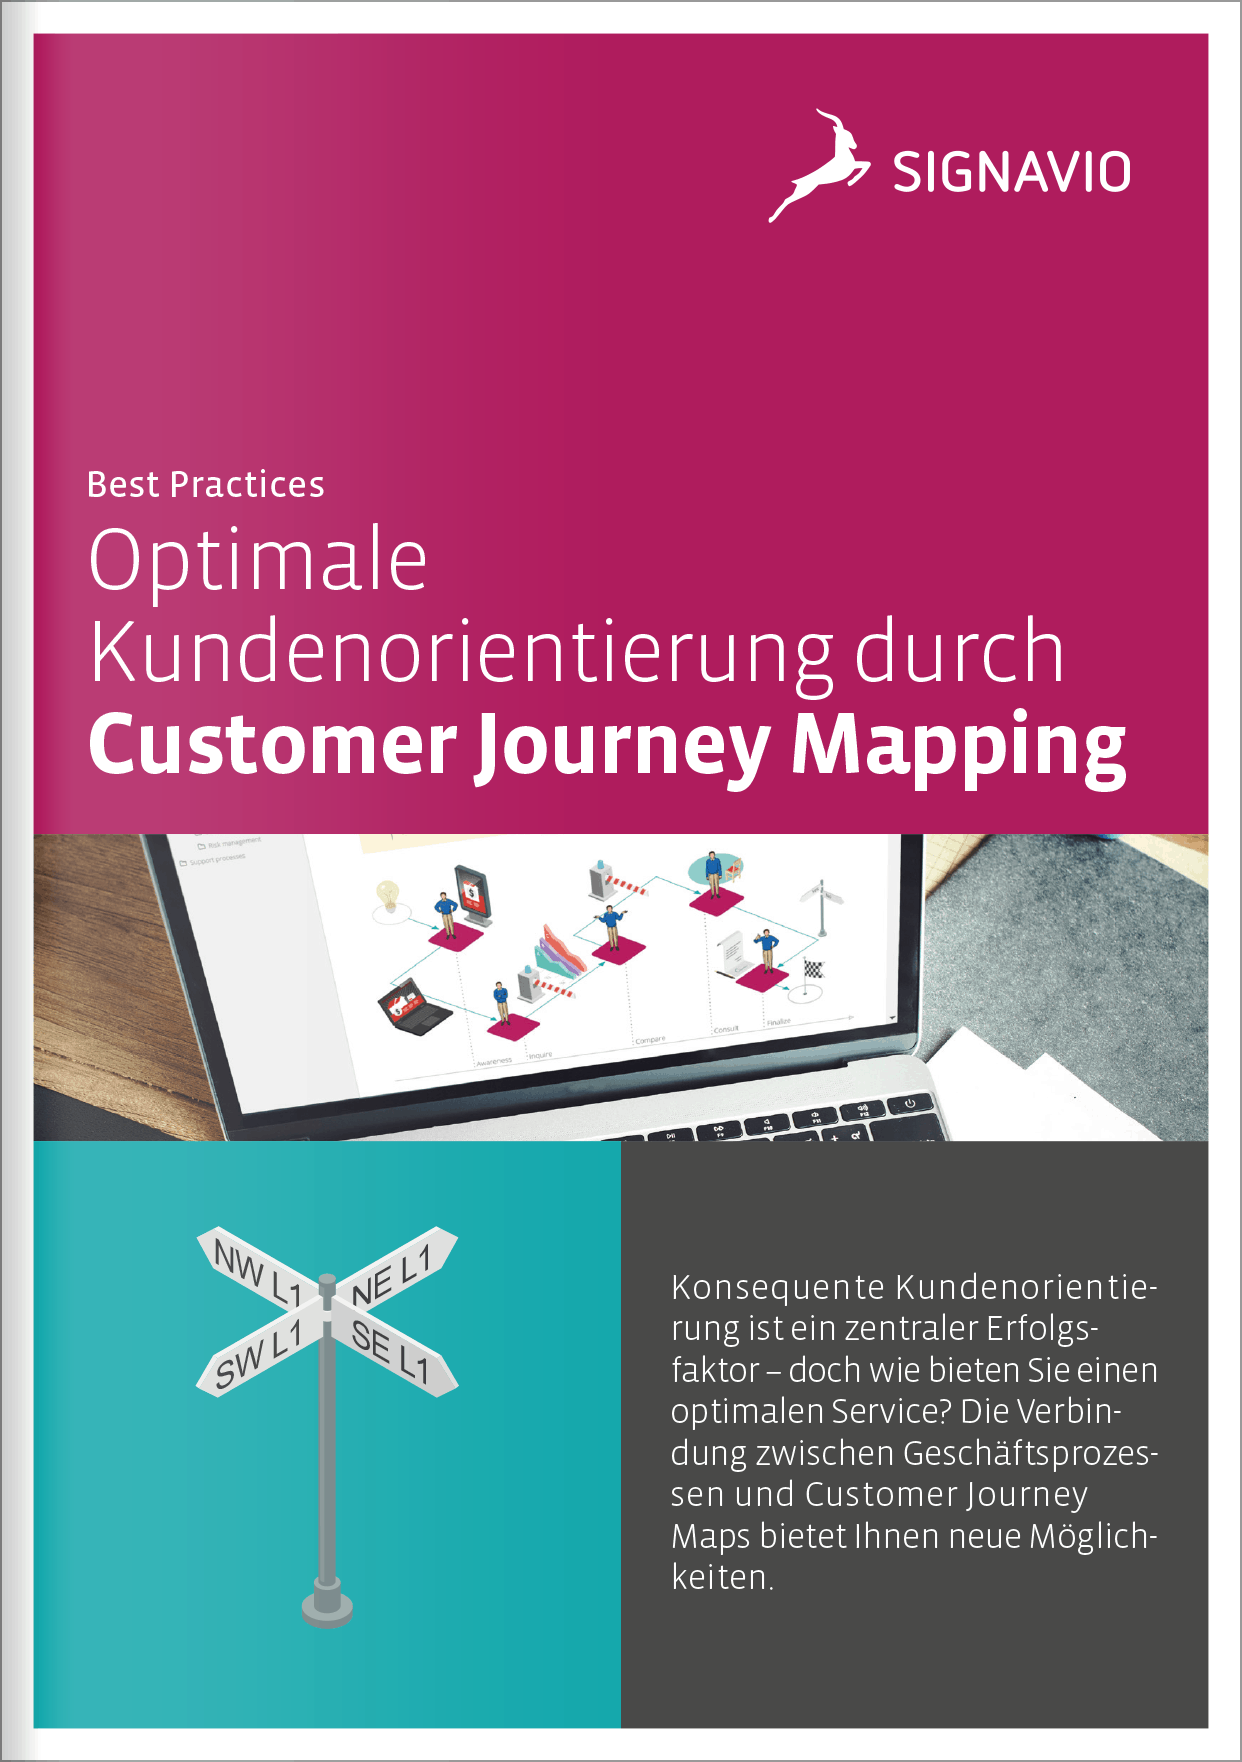 Operational Excellence and Customer Journey Mapping